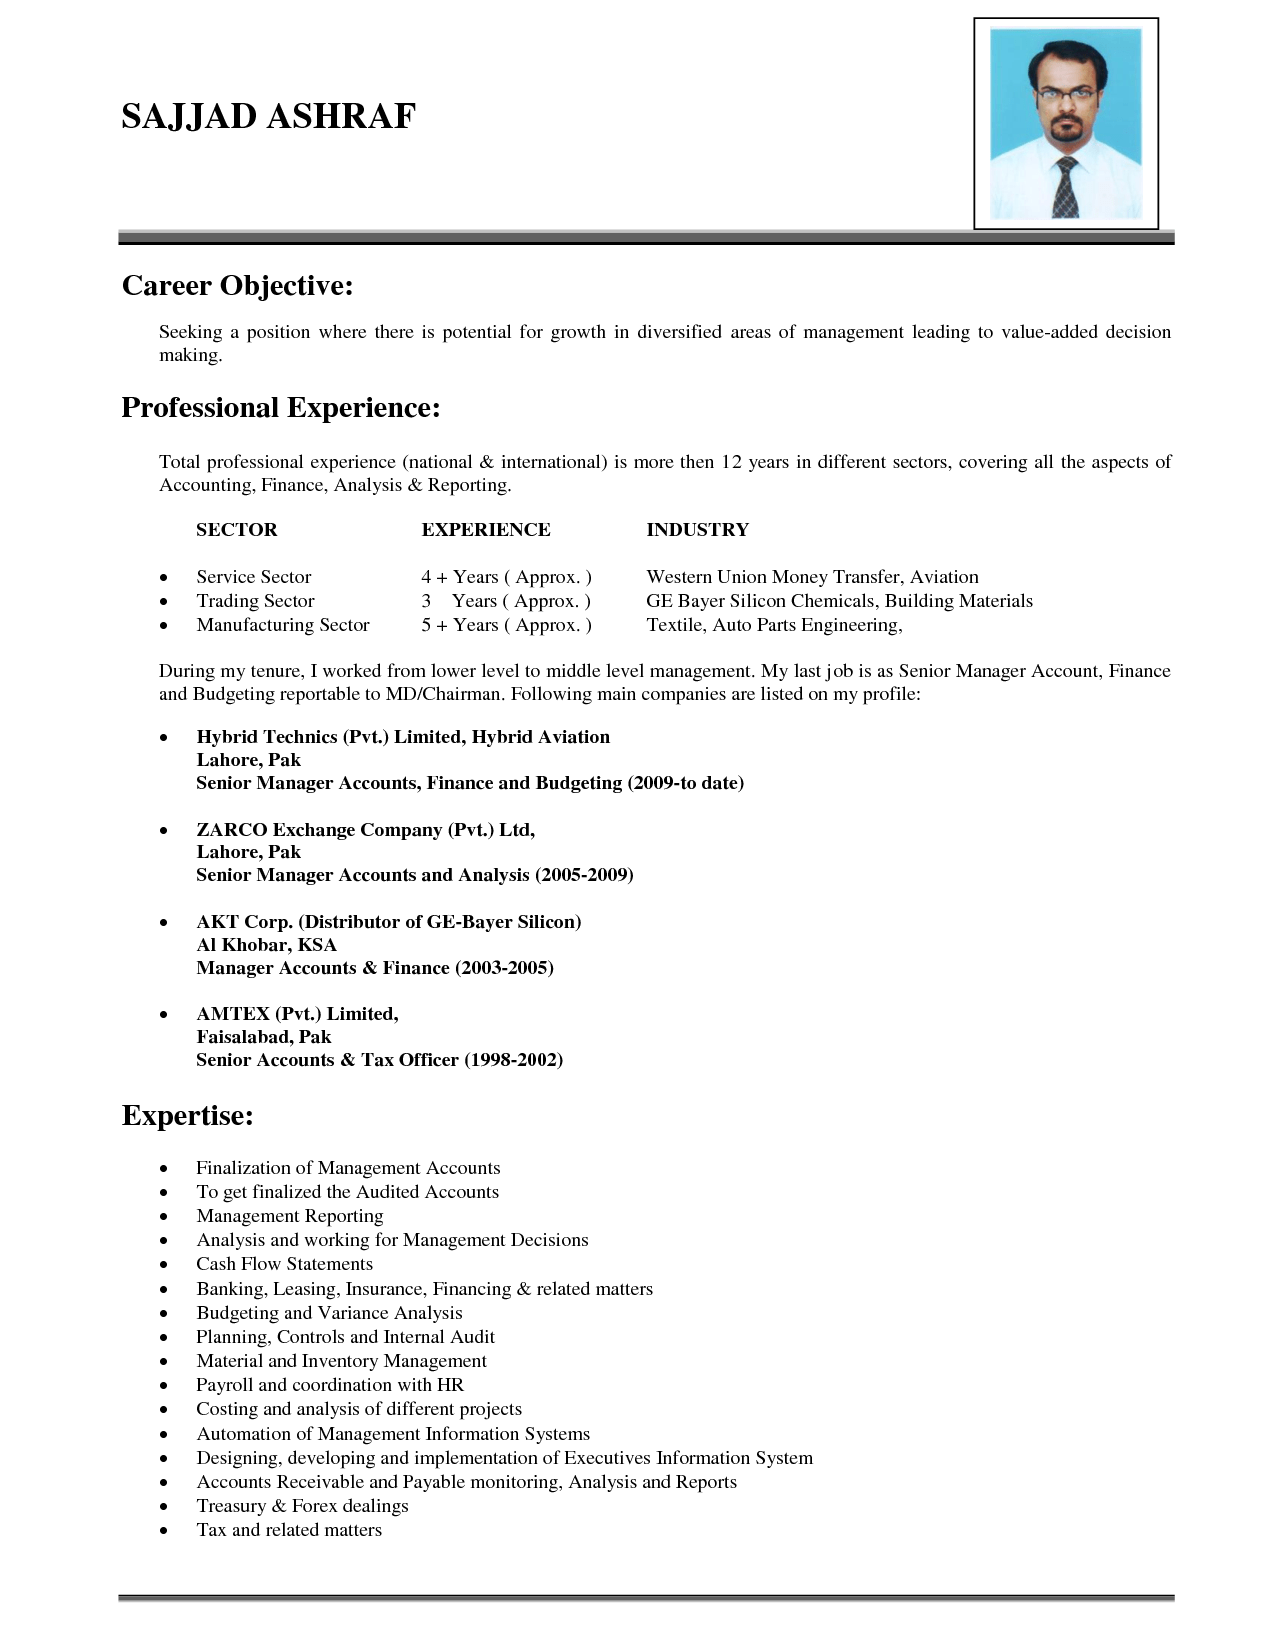 What Is A Good Objective To Write On A Resume 12 General Career Objective Resume Samplebusinessresume